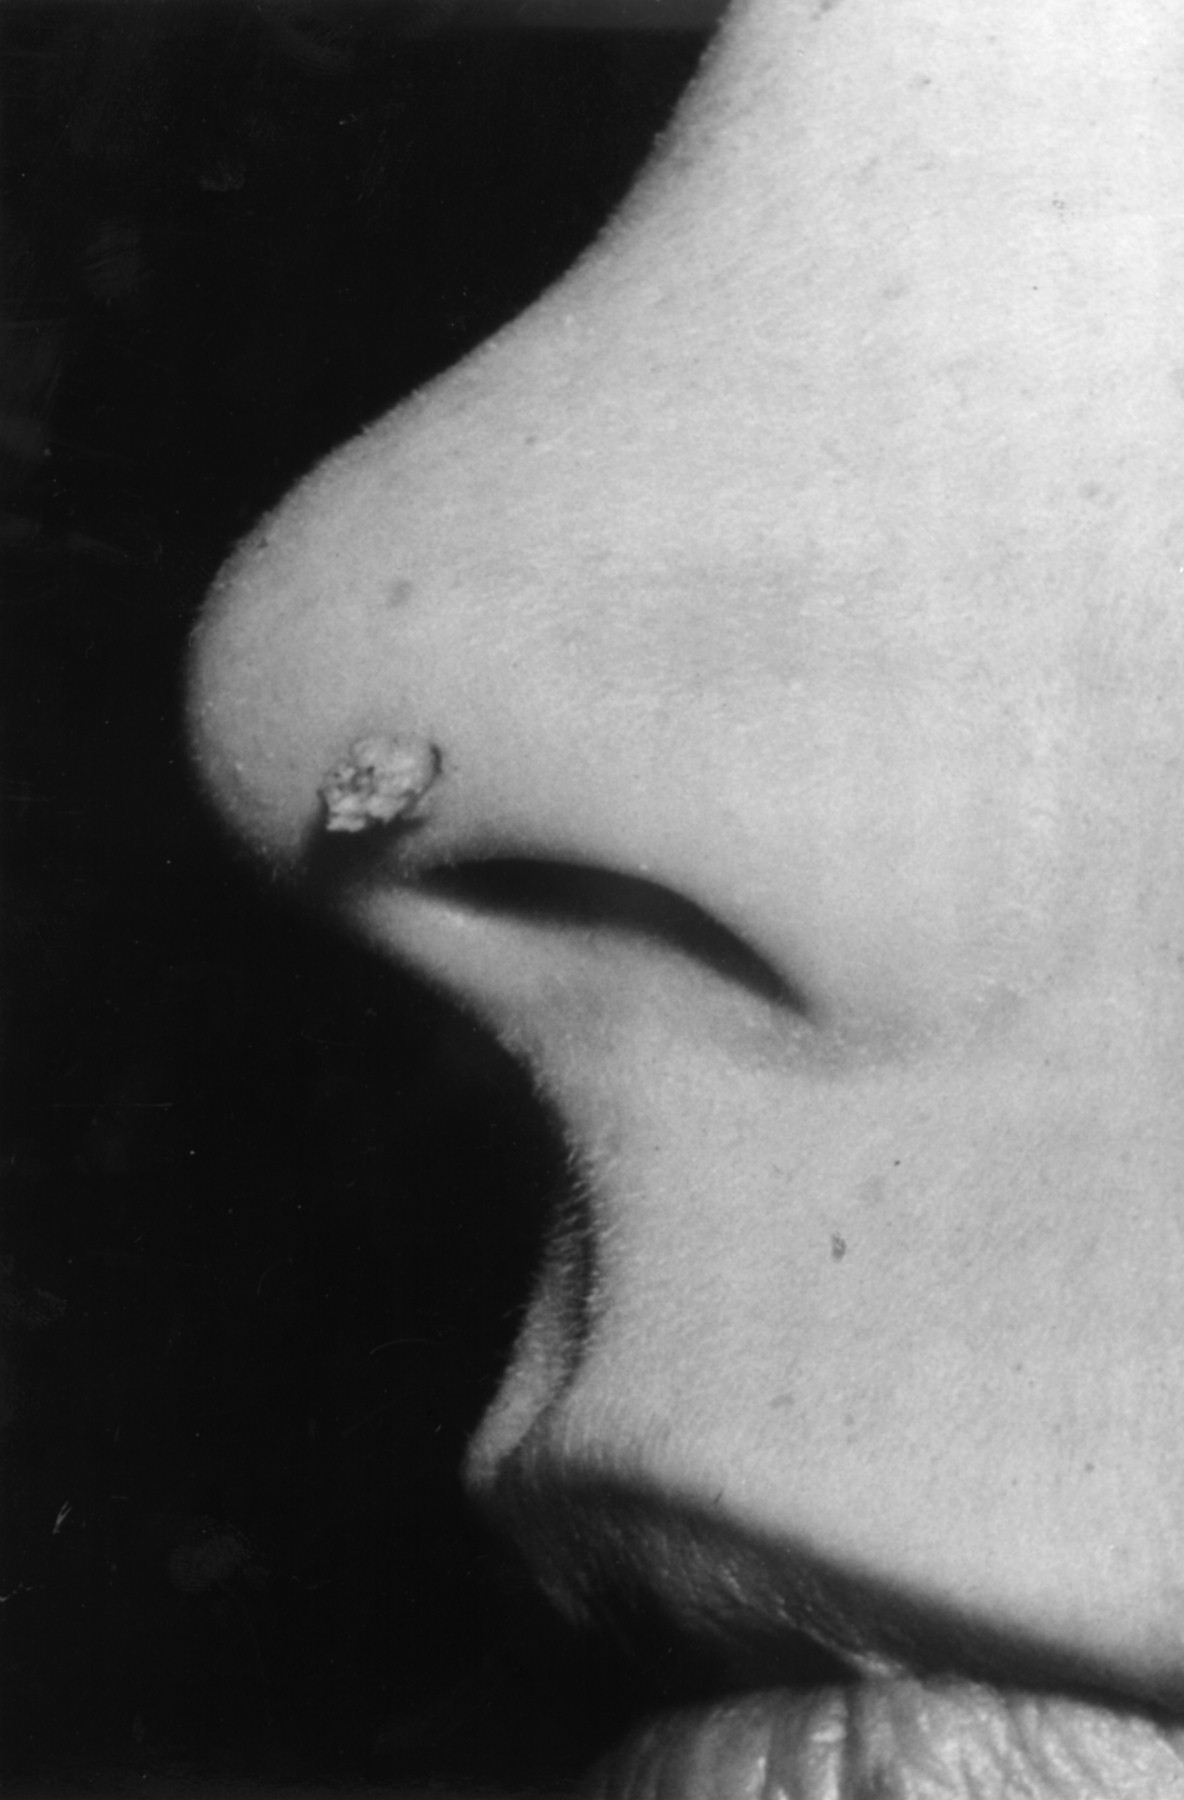 How To Manage Warts Archives Of Disease In Childhood